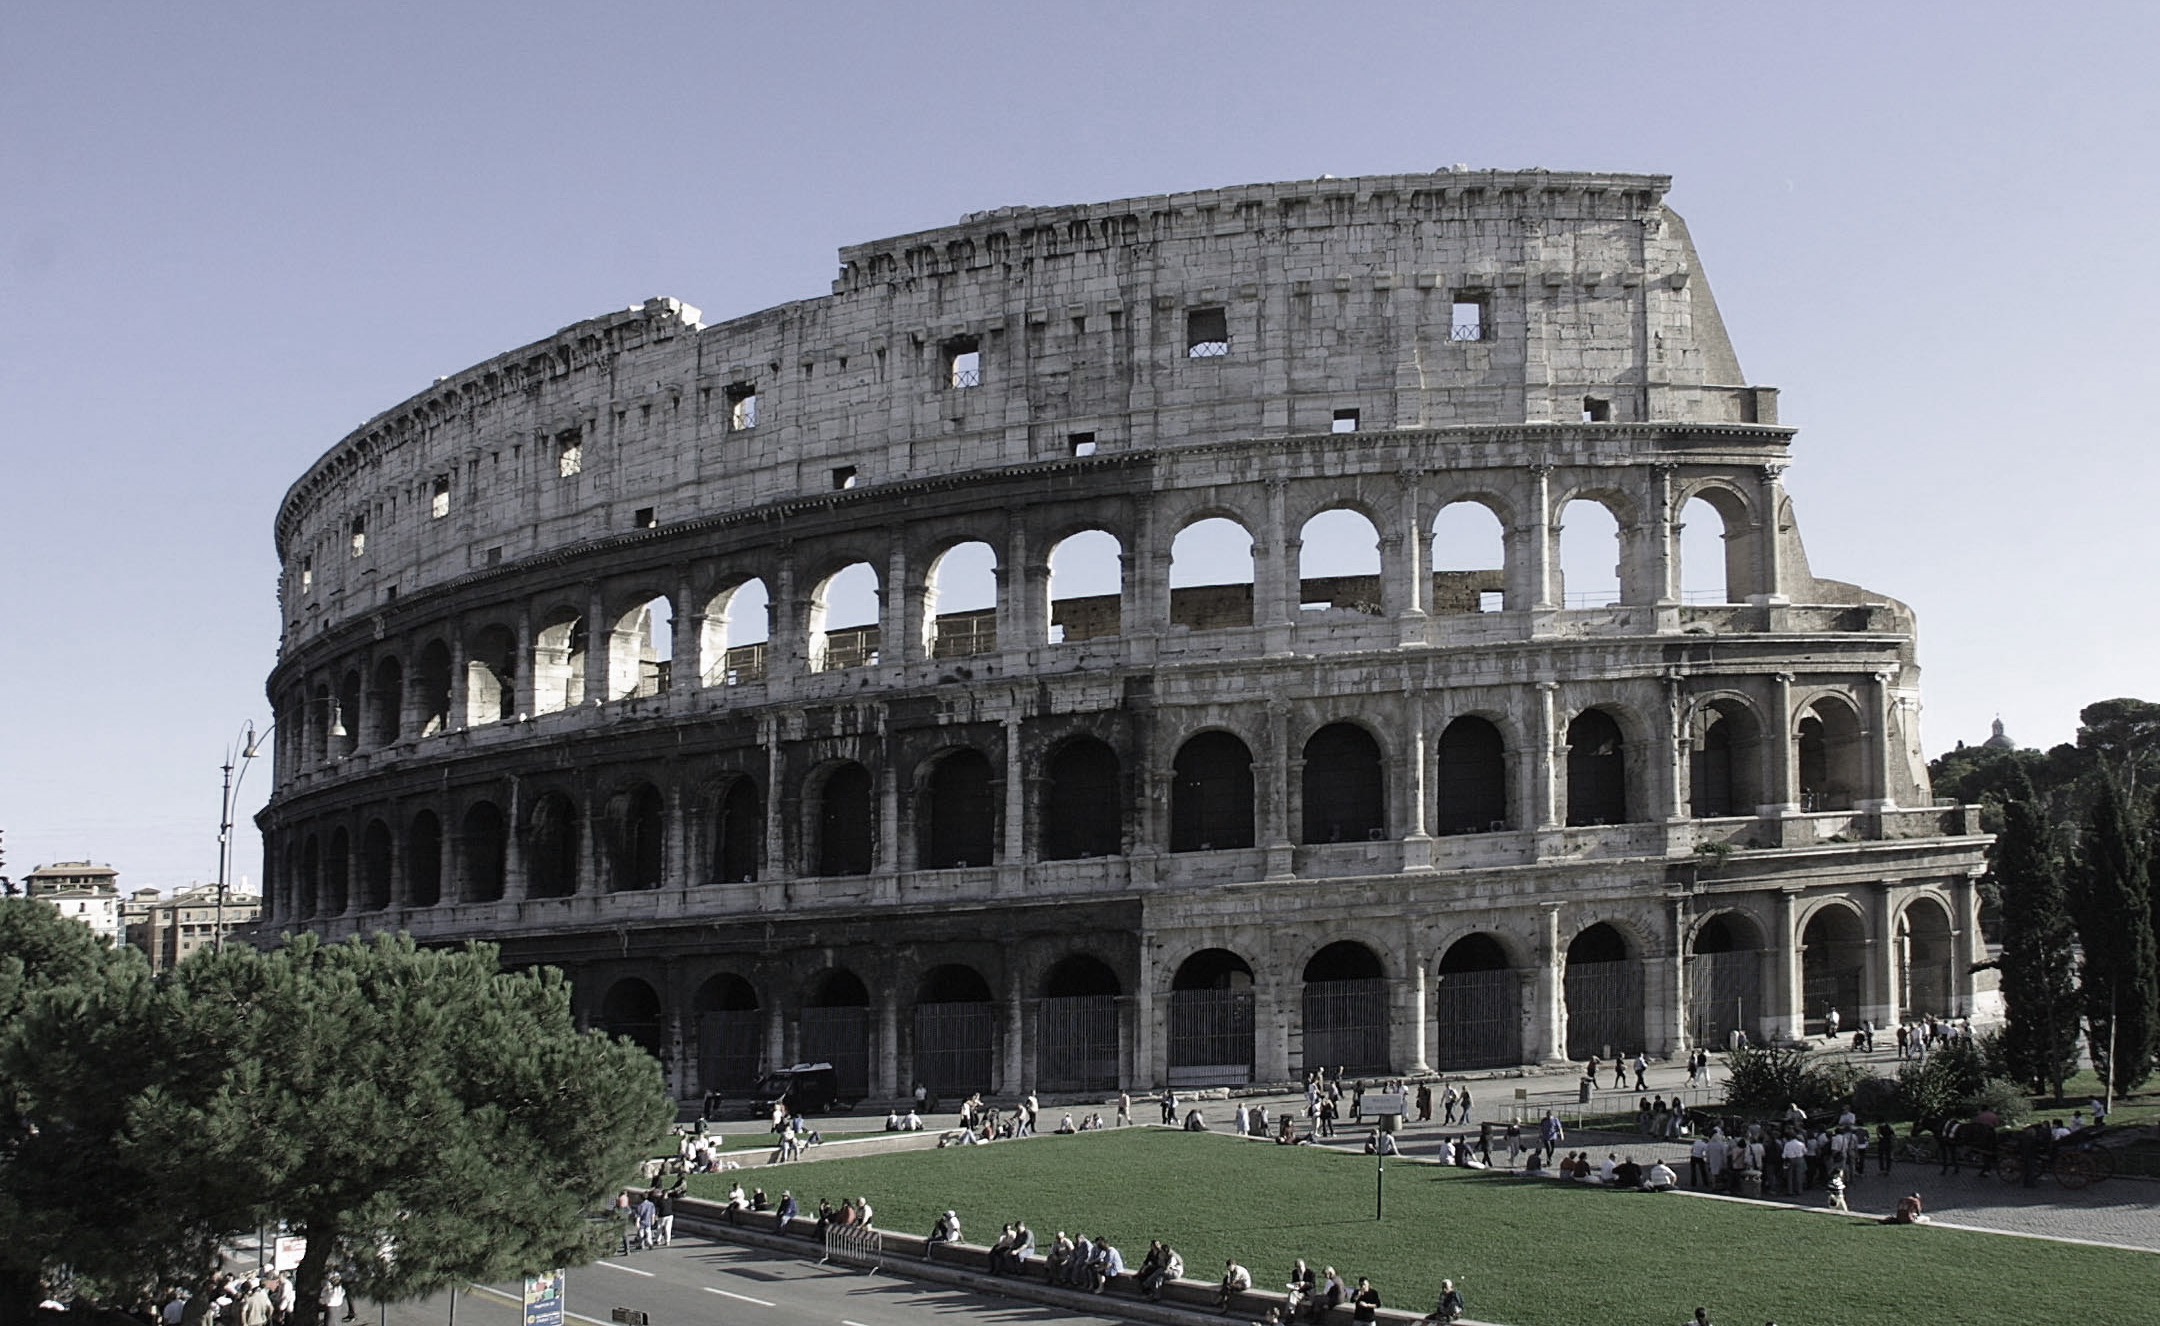 A photo I took of the Coliseum in Rome March 2007.